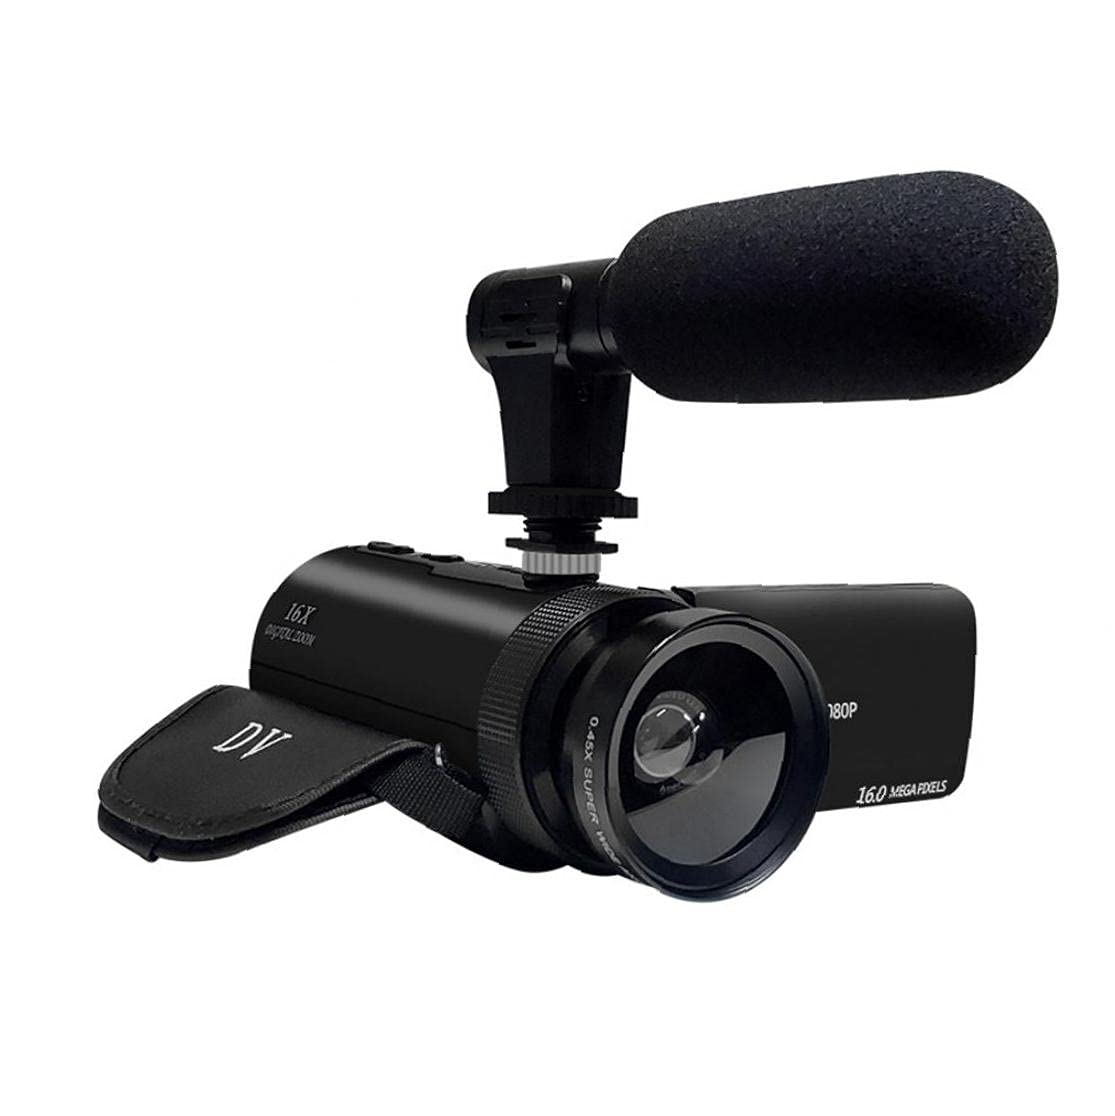 Limited time Limited price sale trial price Camera Digital Video with Microphone 1080p HD 1 Camcorder